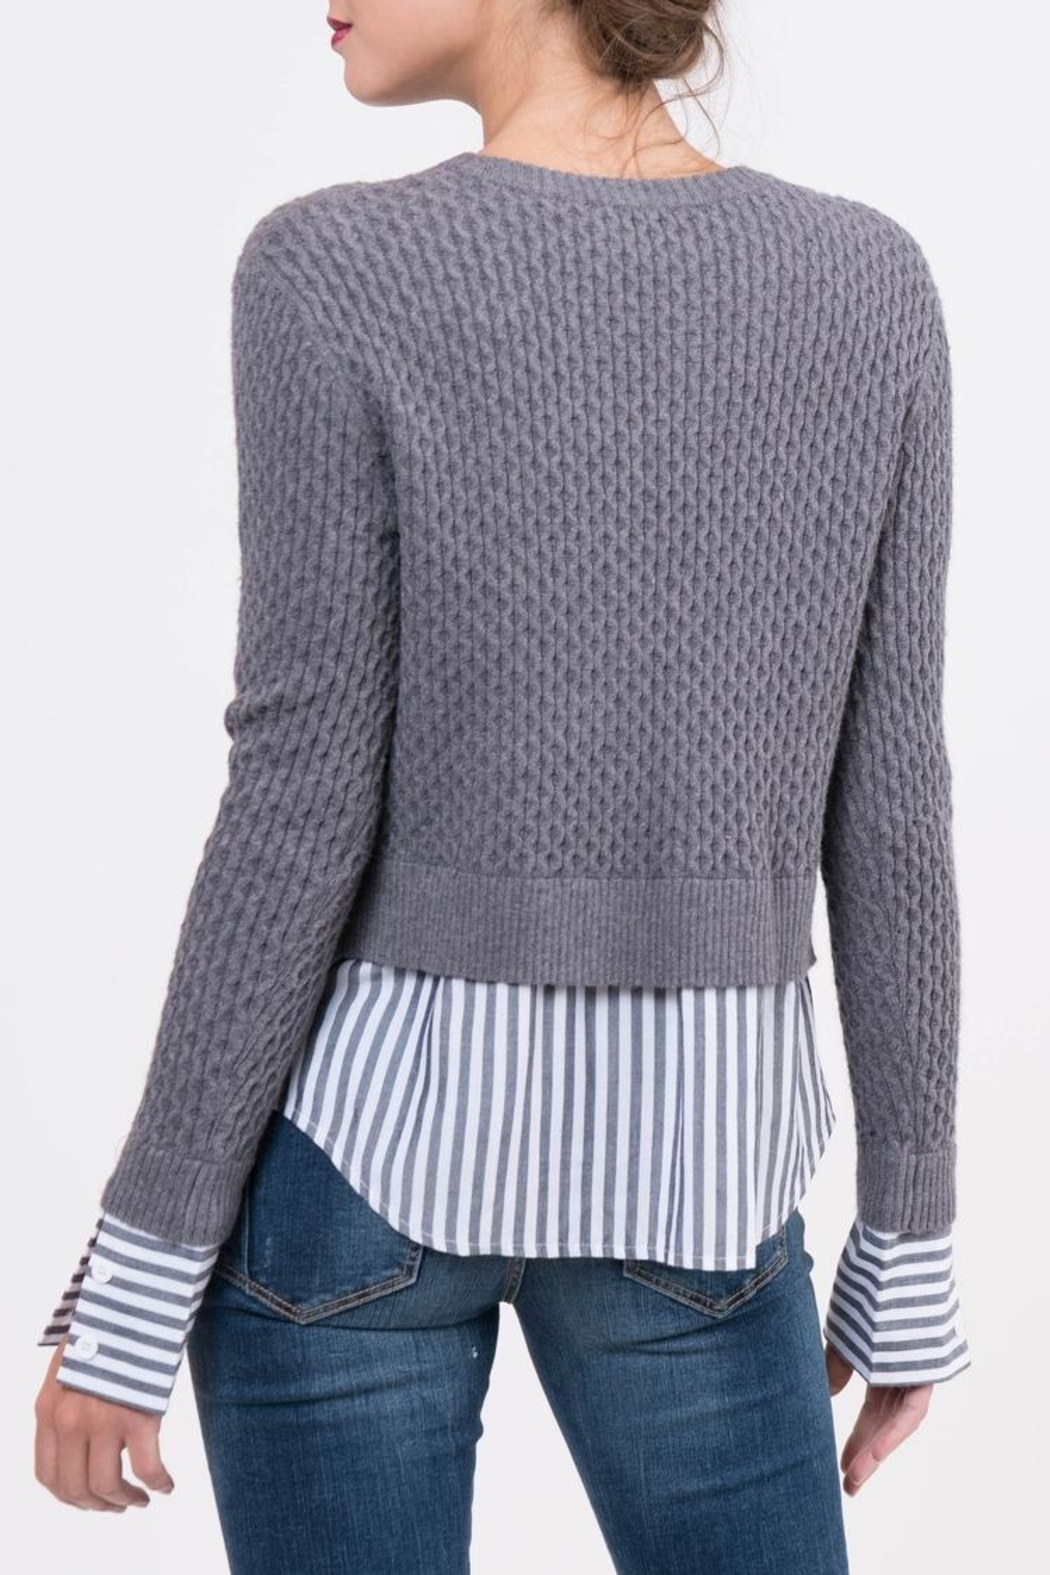 Lucy Paris Knitted Layered Sweater - Side Cropped Image